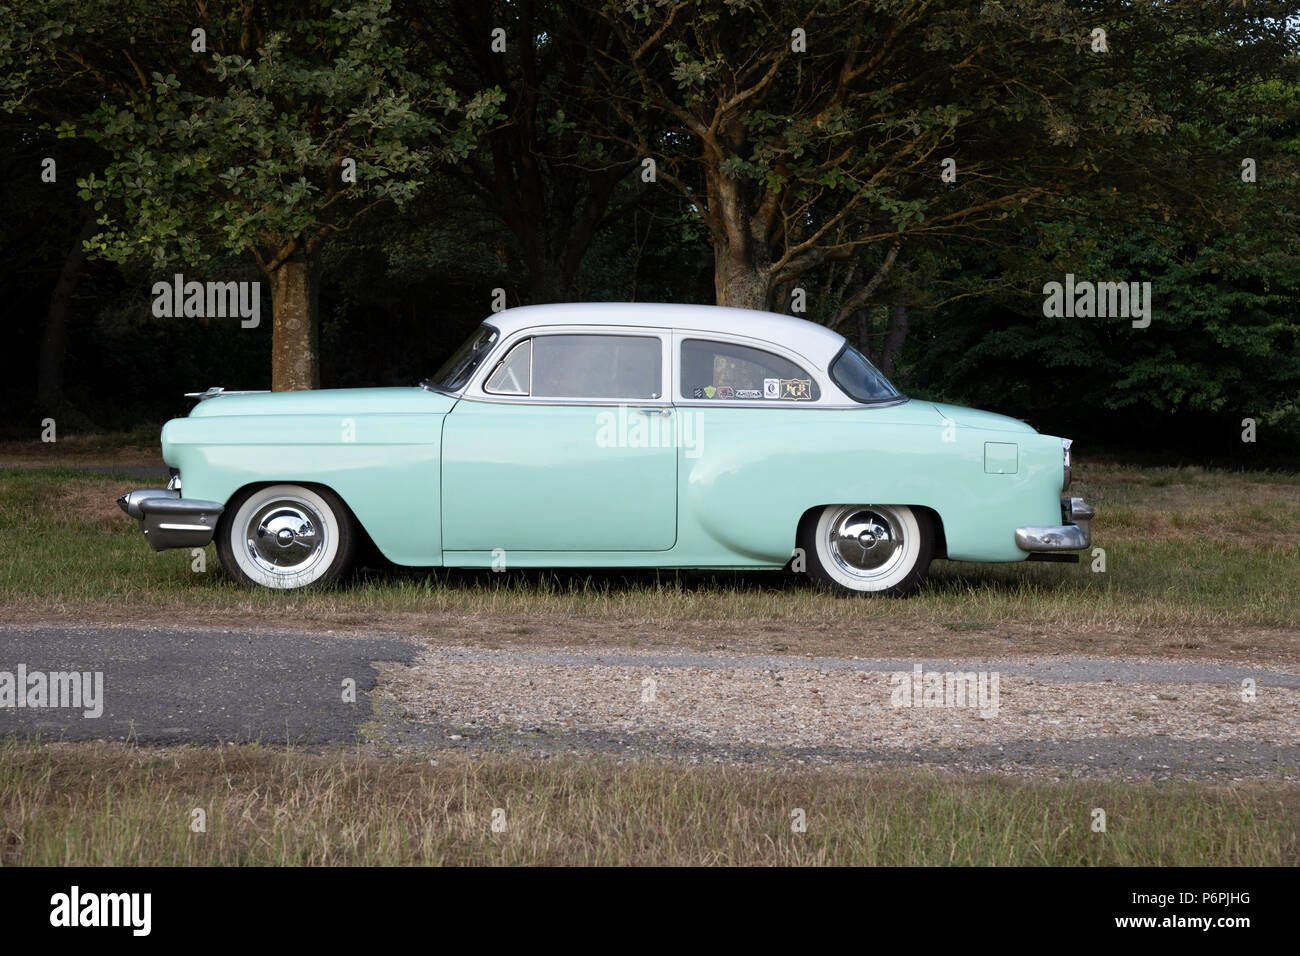 Chevrolet 150 Coupe 1954 - Stock Image